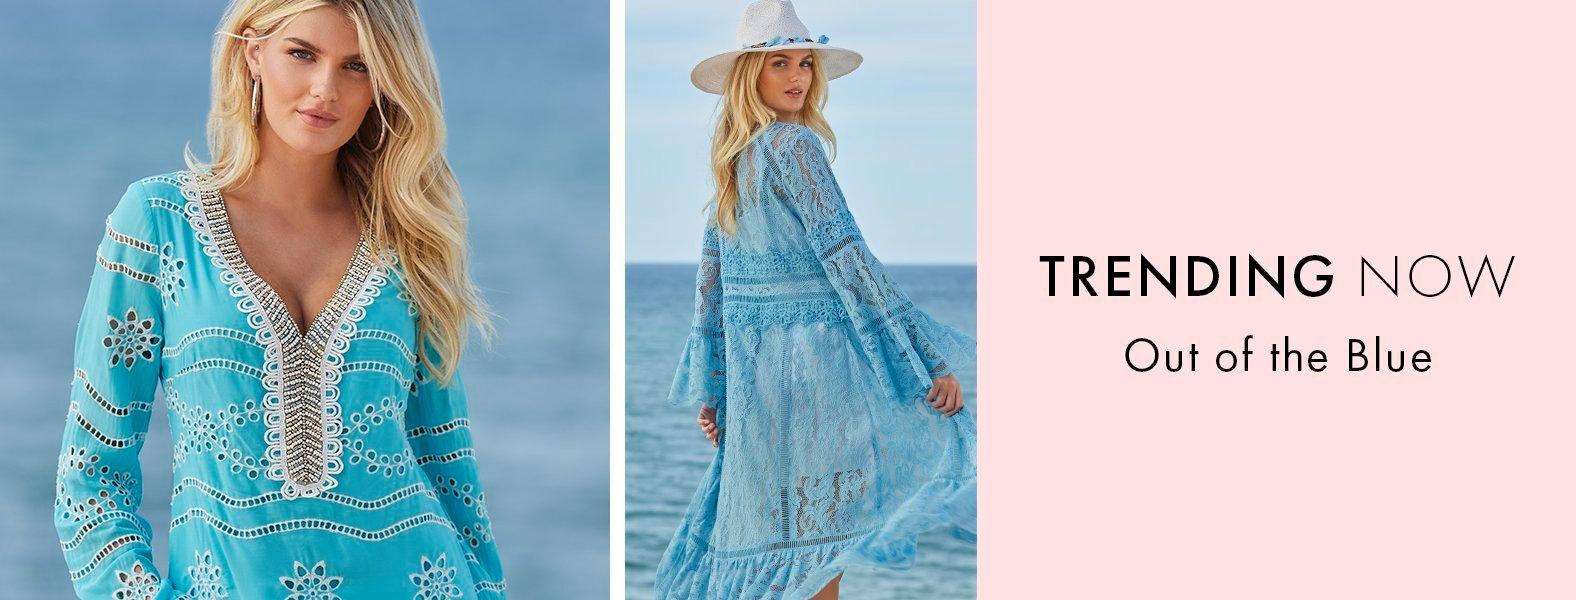 left model wearing a blue eyelet tunic with silver embellishments. right model wearing a light blue lace duster and a white floppy hat with turquoise embroidery.